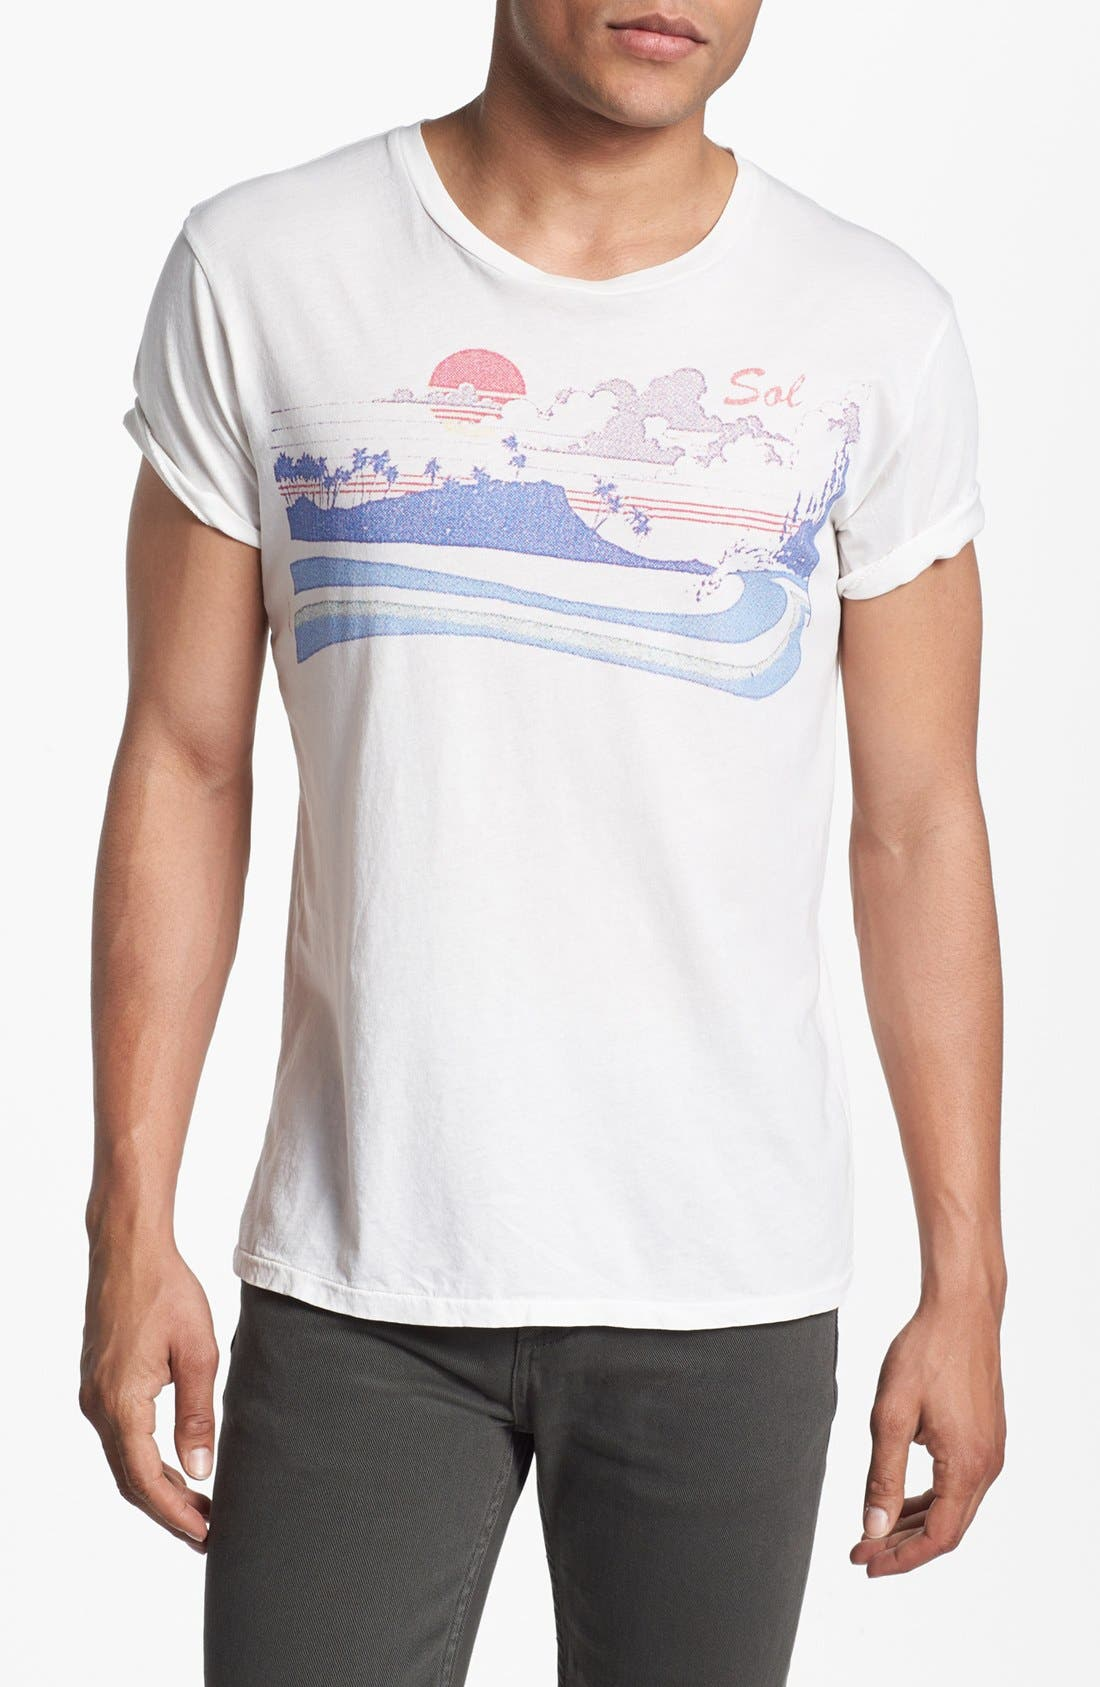 Main Image - Sol Angeles 'Sol Surf' Graphic T-Shirt